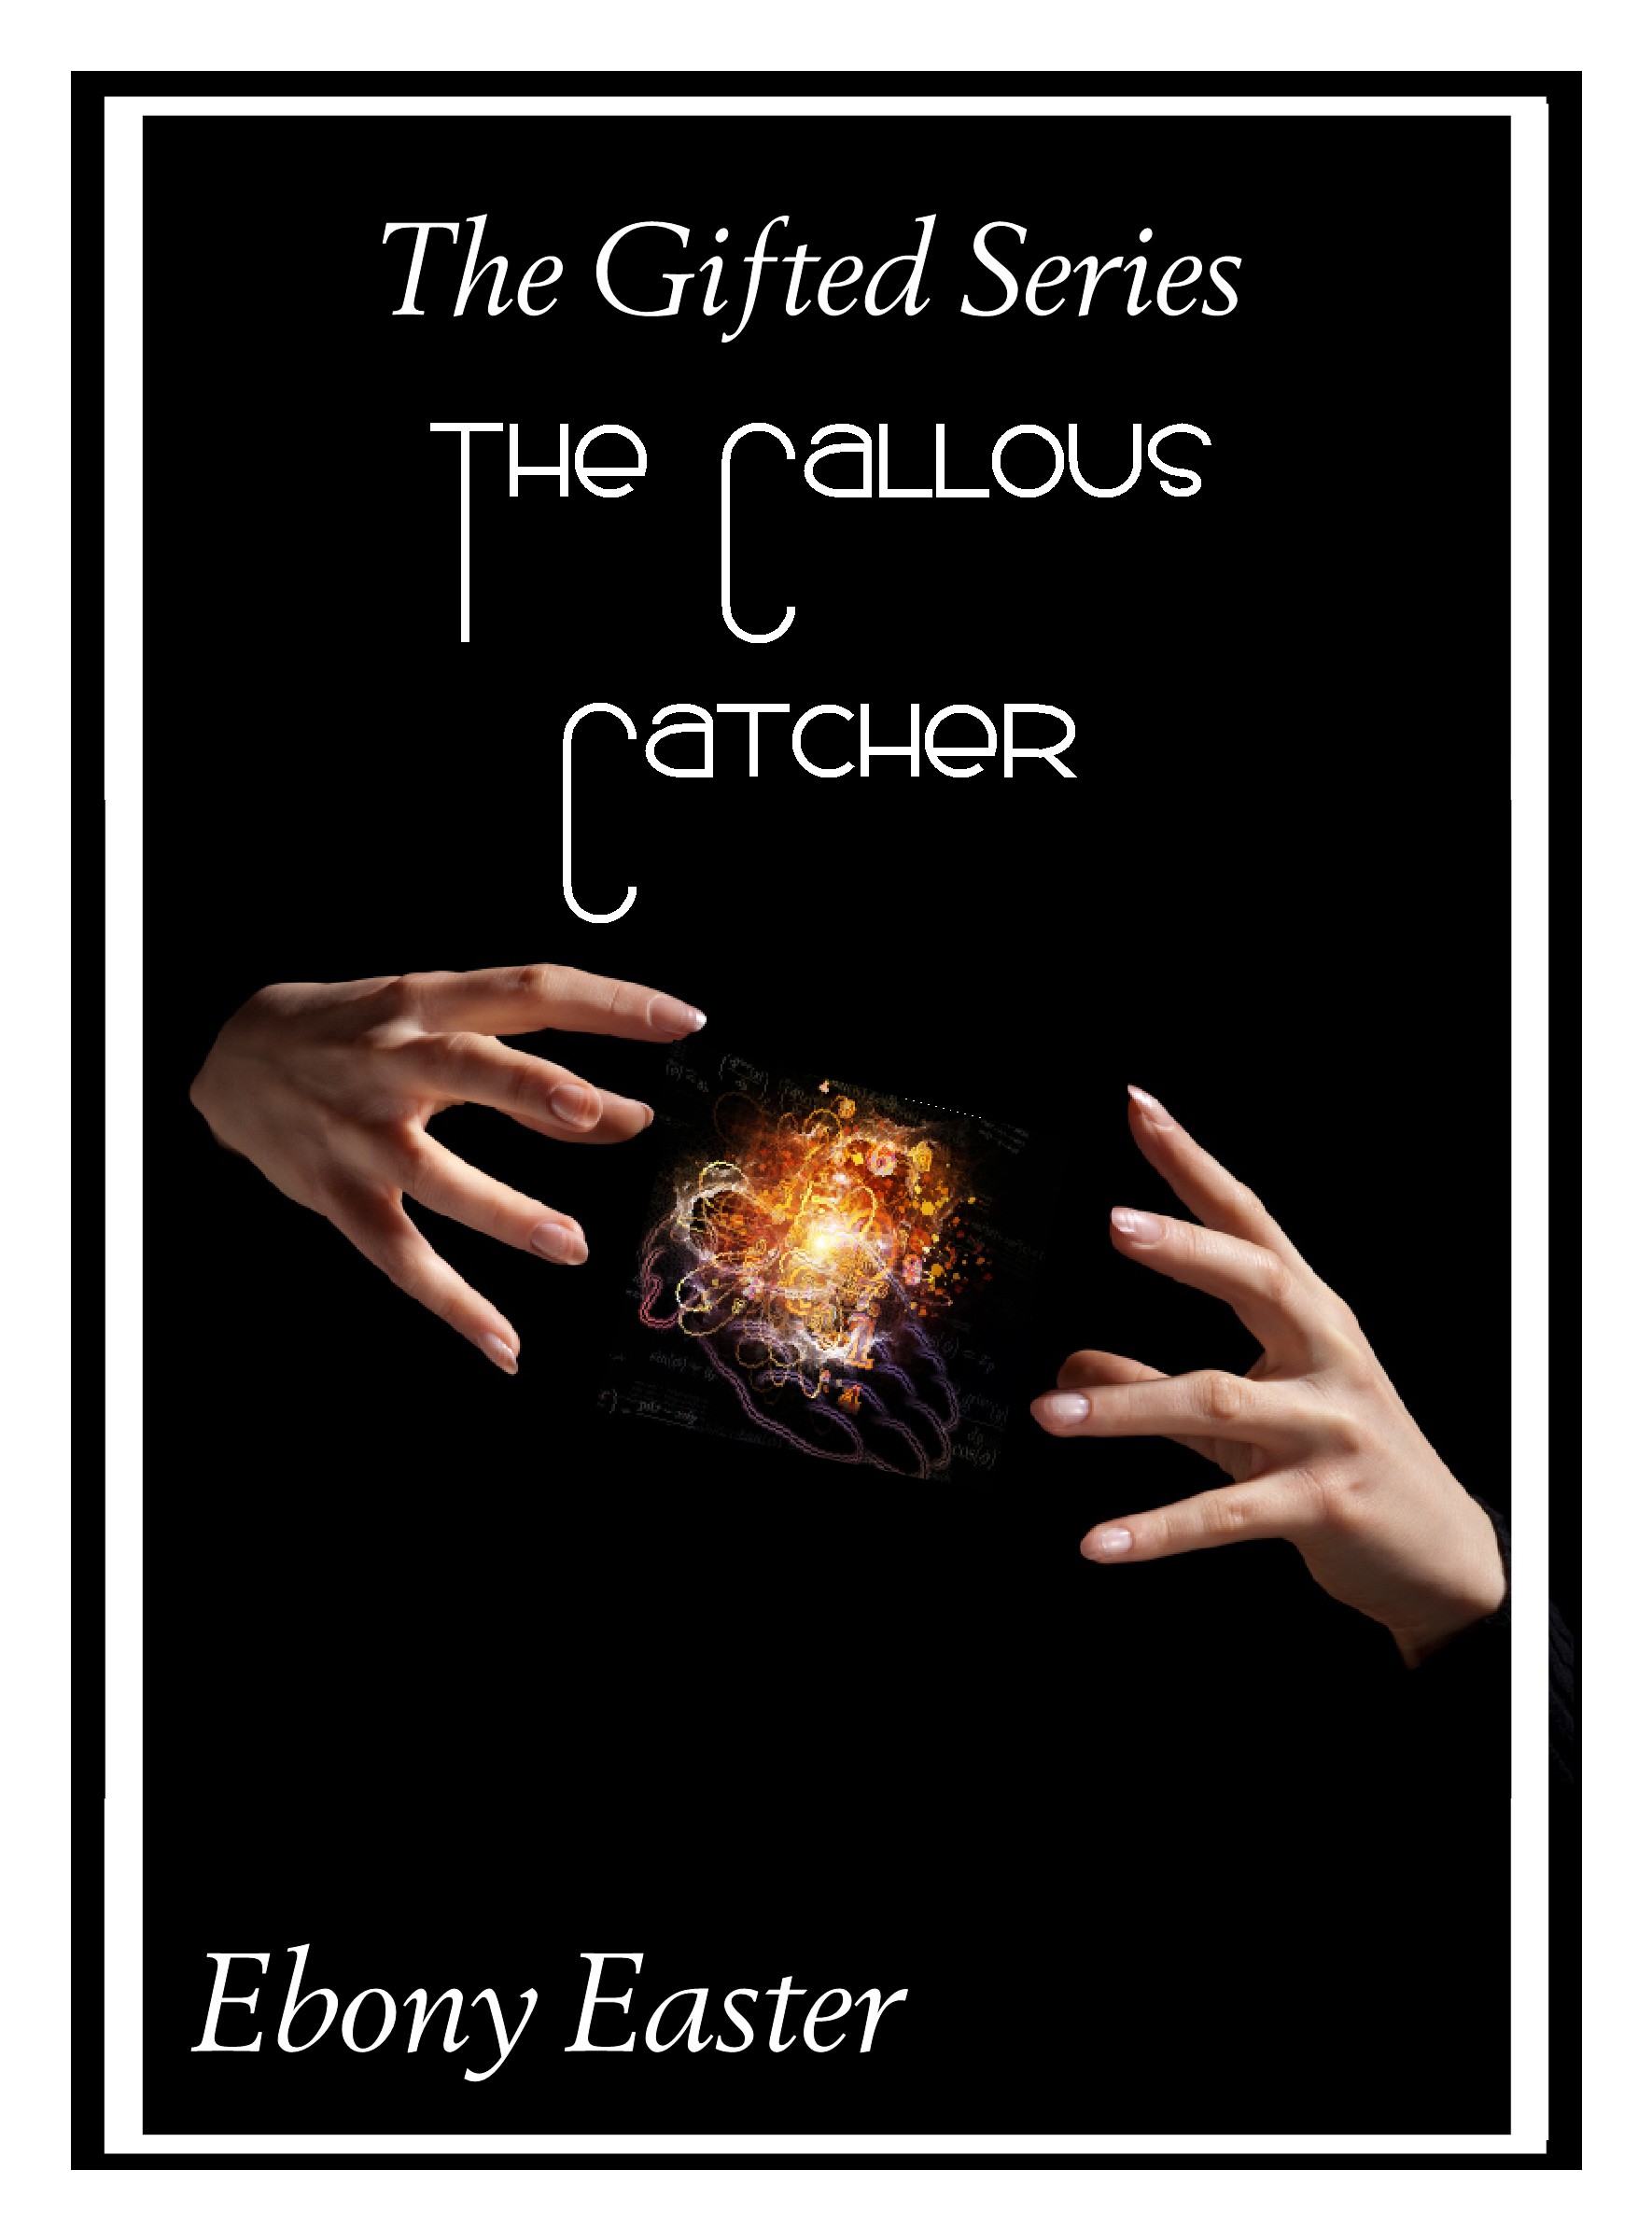 The Callous Catcher (The Gifted)